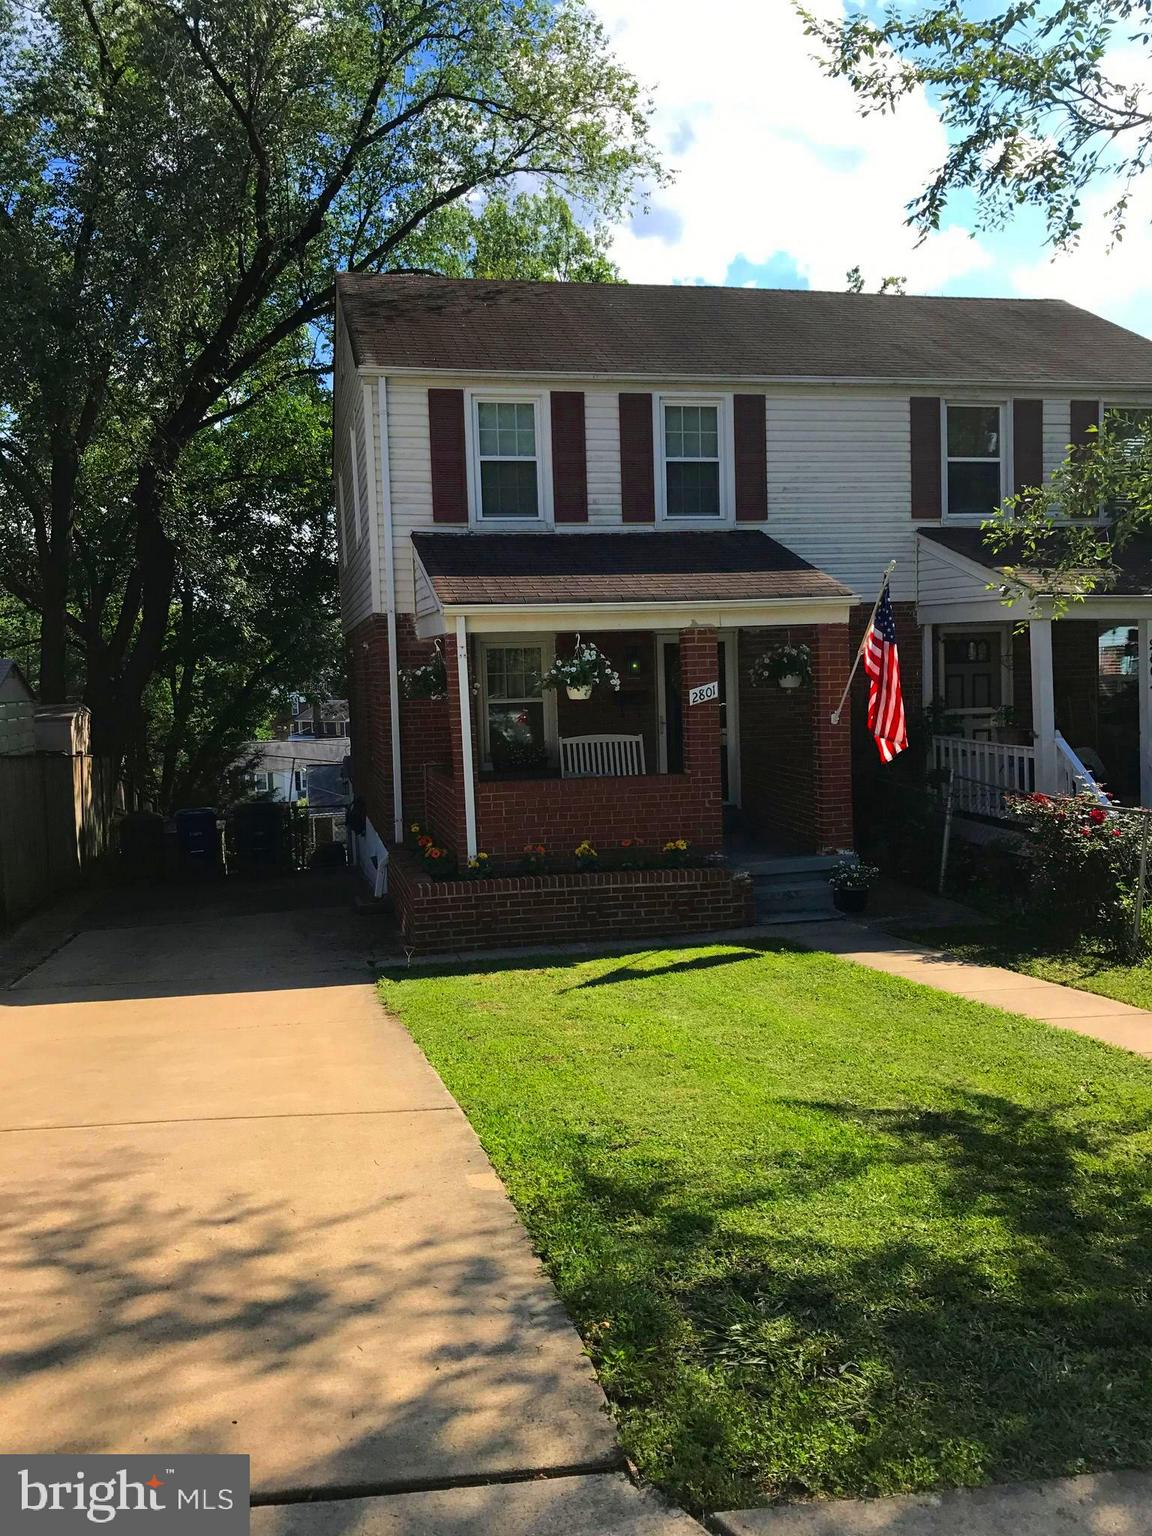 Jefferson Manor brick duplex (with lower level addition) fully renovated. 2 bed, 2 bath. Granite, hardwood floors. Walk to Huntington Metro and Park. Fenced backyard - perfect for dogs!]